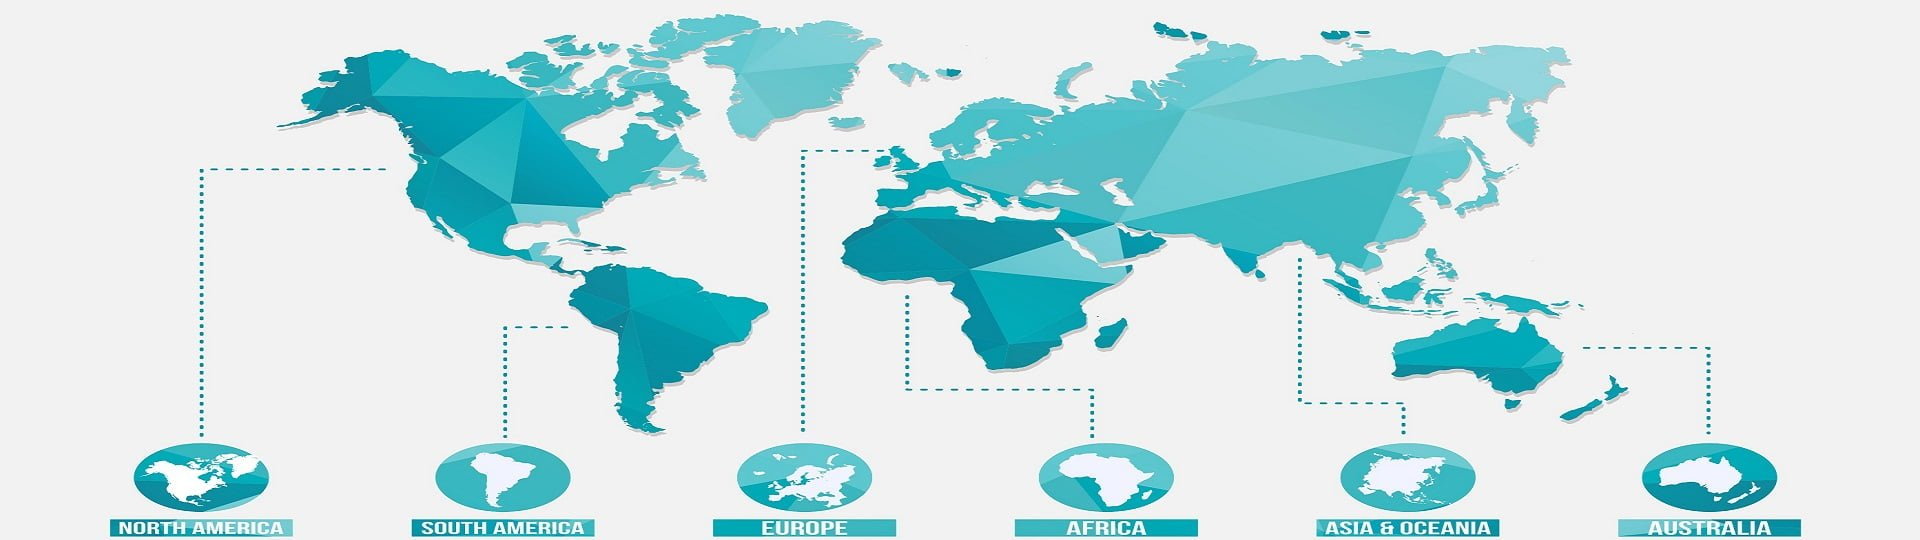 freight forwarding and project logistics world wide operations map